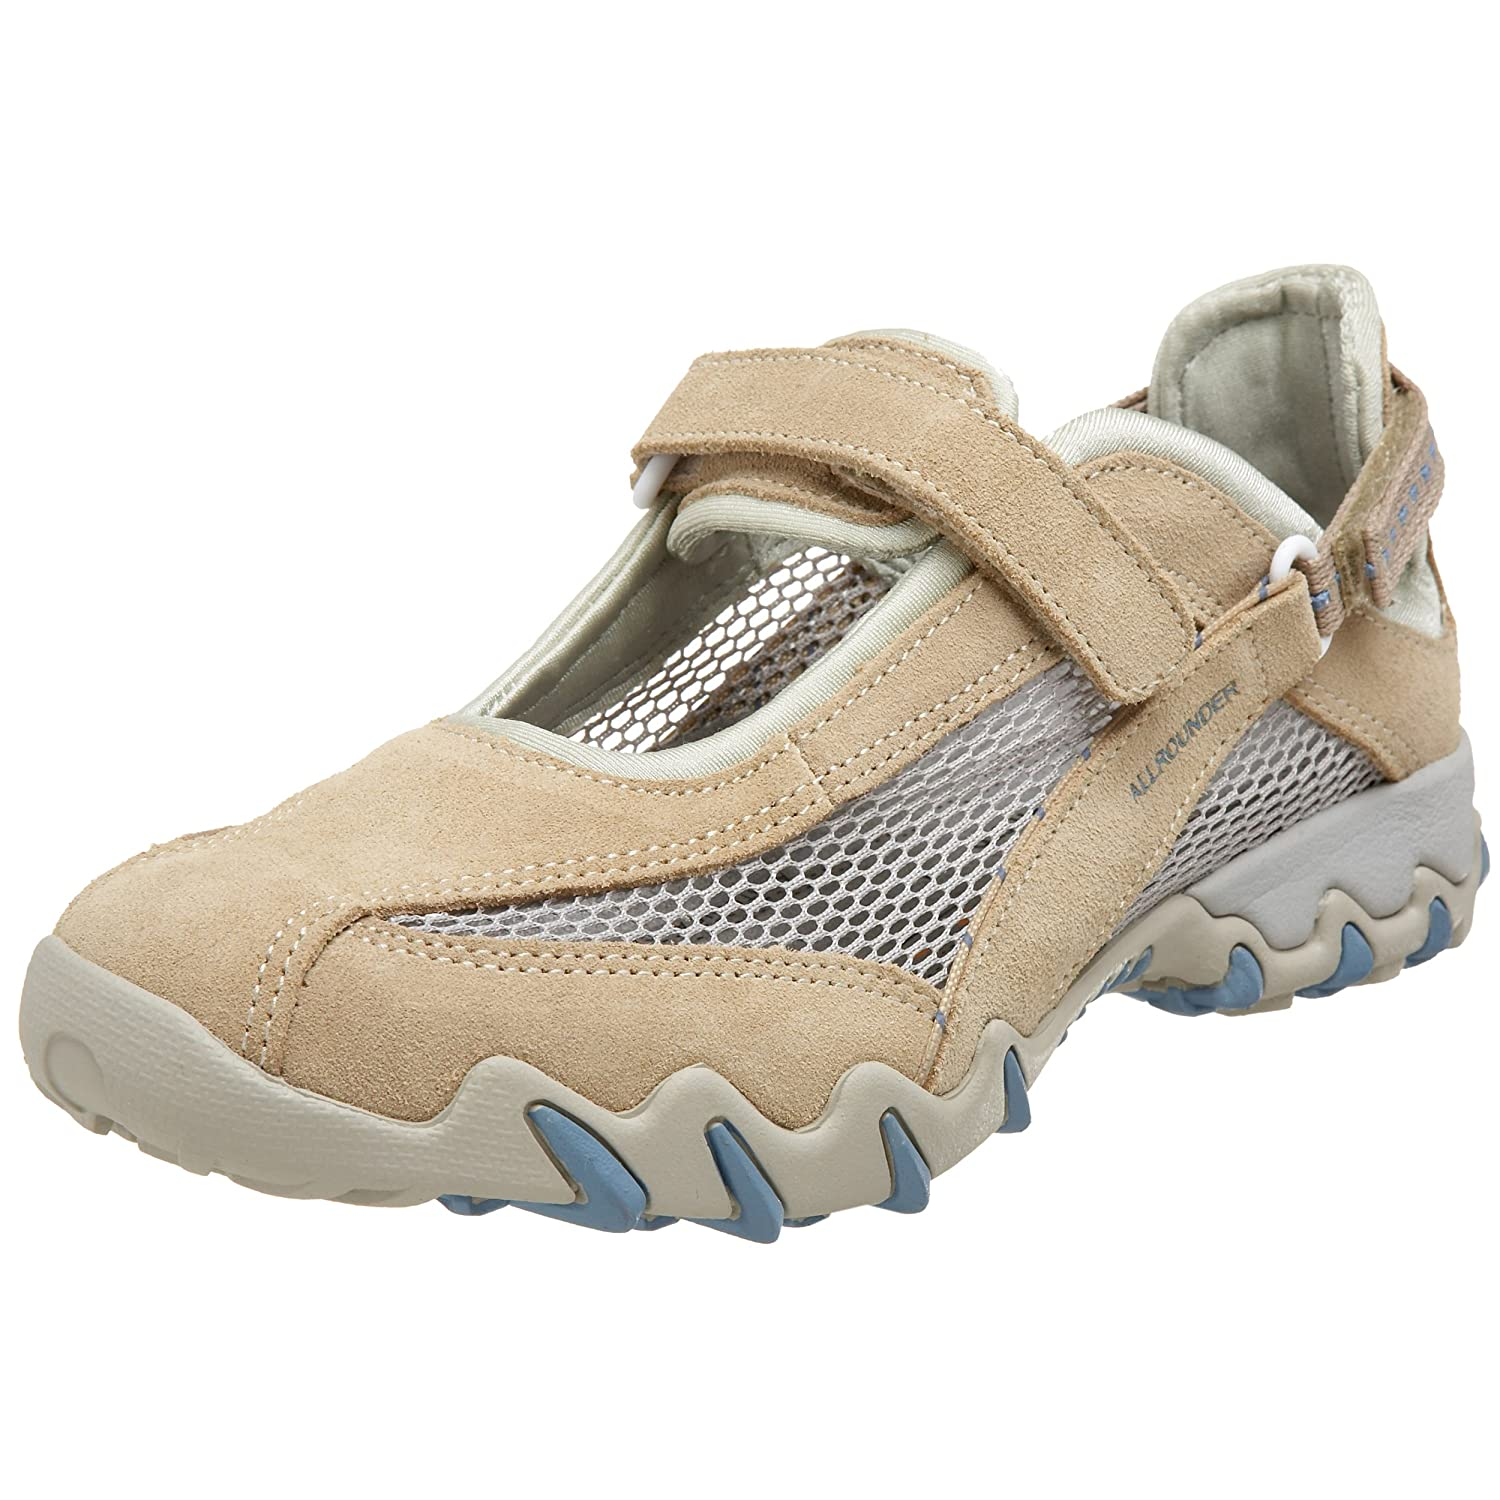 Allrounder by Mephisto Women's Niro Mary Jane Flat B001G0MBJG 9.5 B(M) US|Nature/Cool Grey